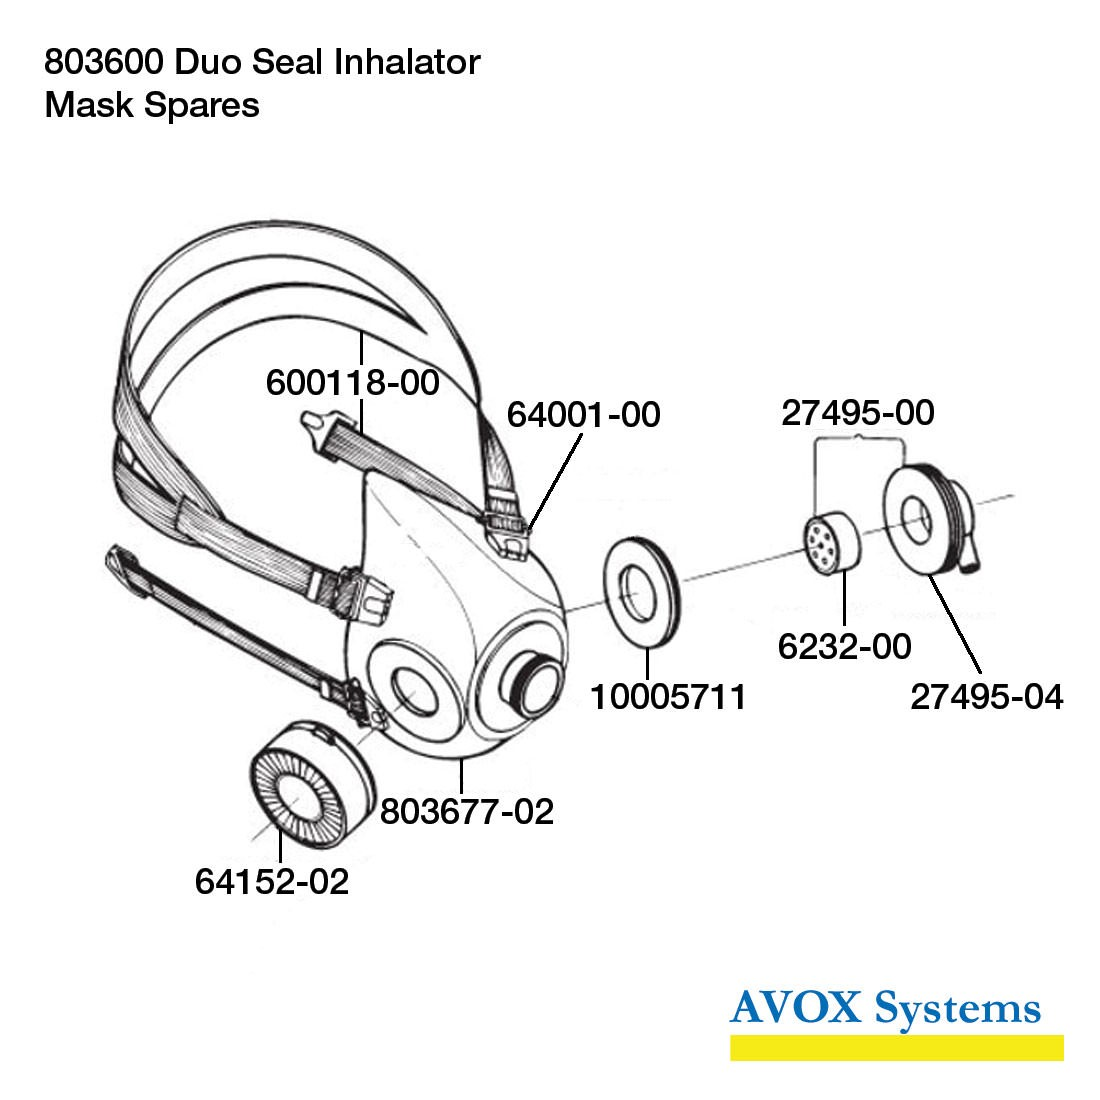 Avox Series 803600 Duo Seal Inhalator without 1st Stage Regulator Assembly without Microphone Assembly 803600-02 - Mask Spares